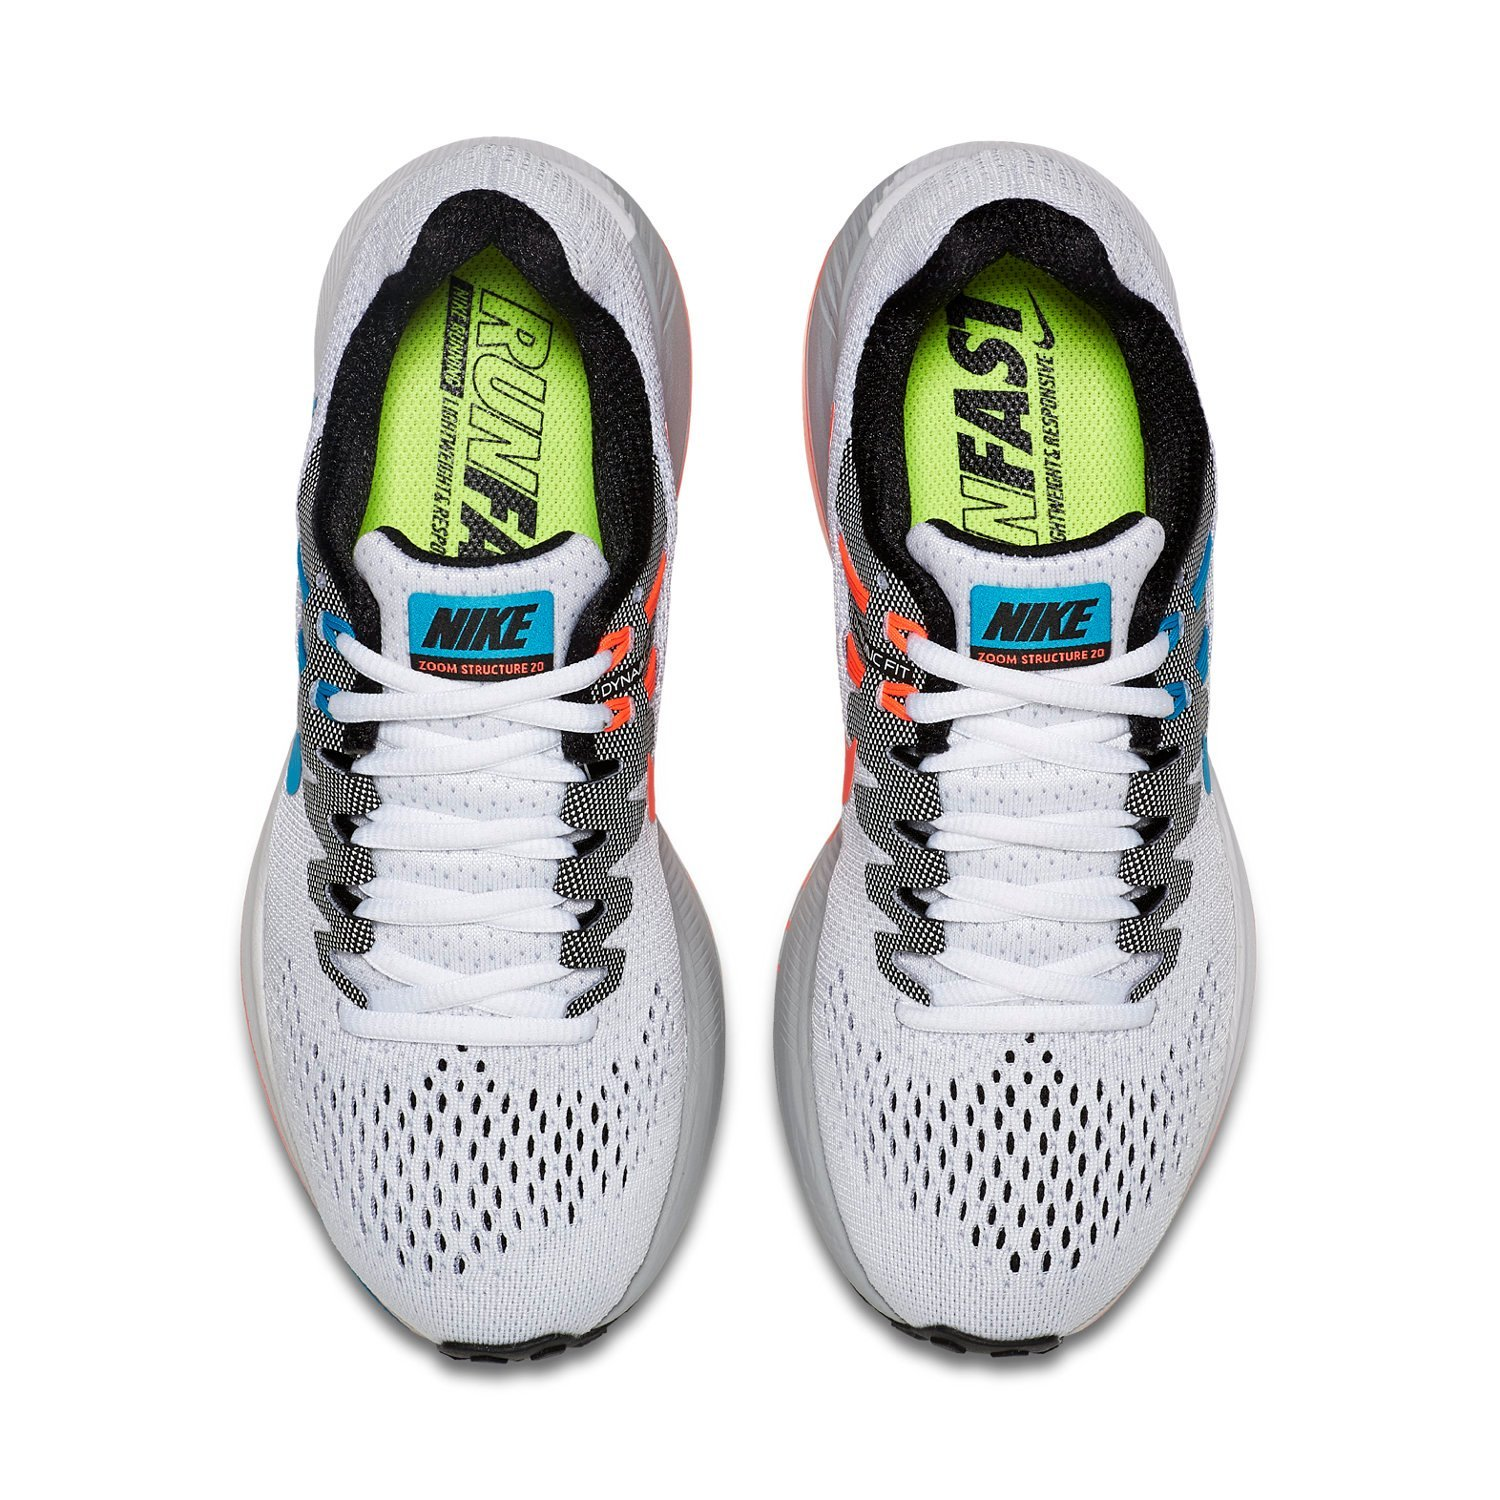 hot sales c5791 0a4c5 Nike Air Zoom Structure 20 Anniversary Women s Running Shoes (849583 100),  White (White Bluee Lagoon Black Hot Lava), 42  Amazon.co.uk  Shoes   Bags